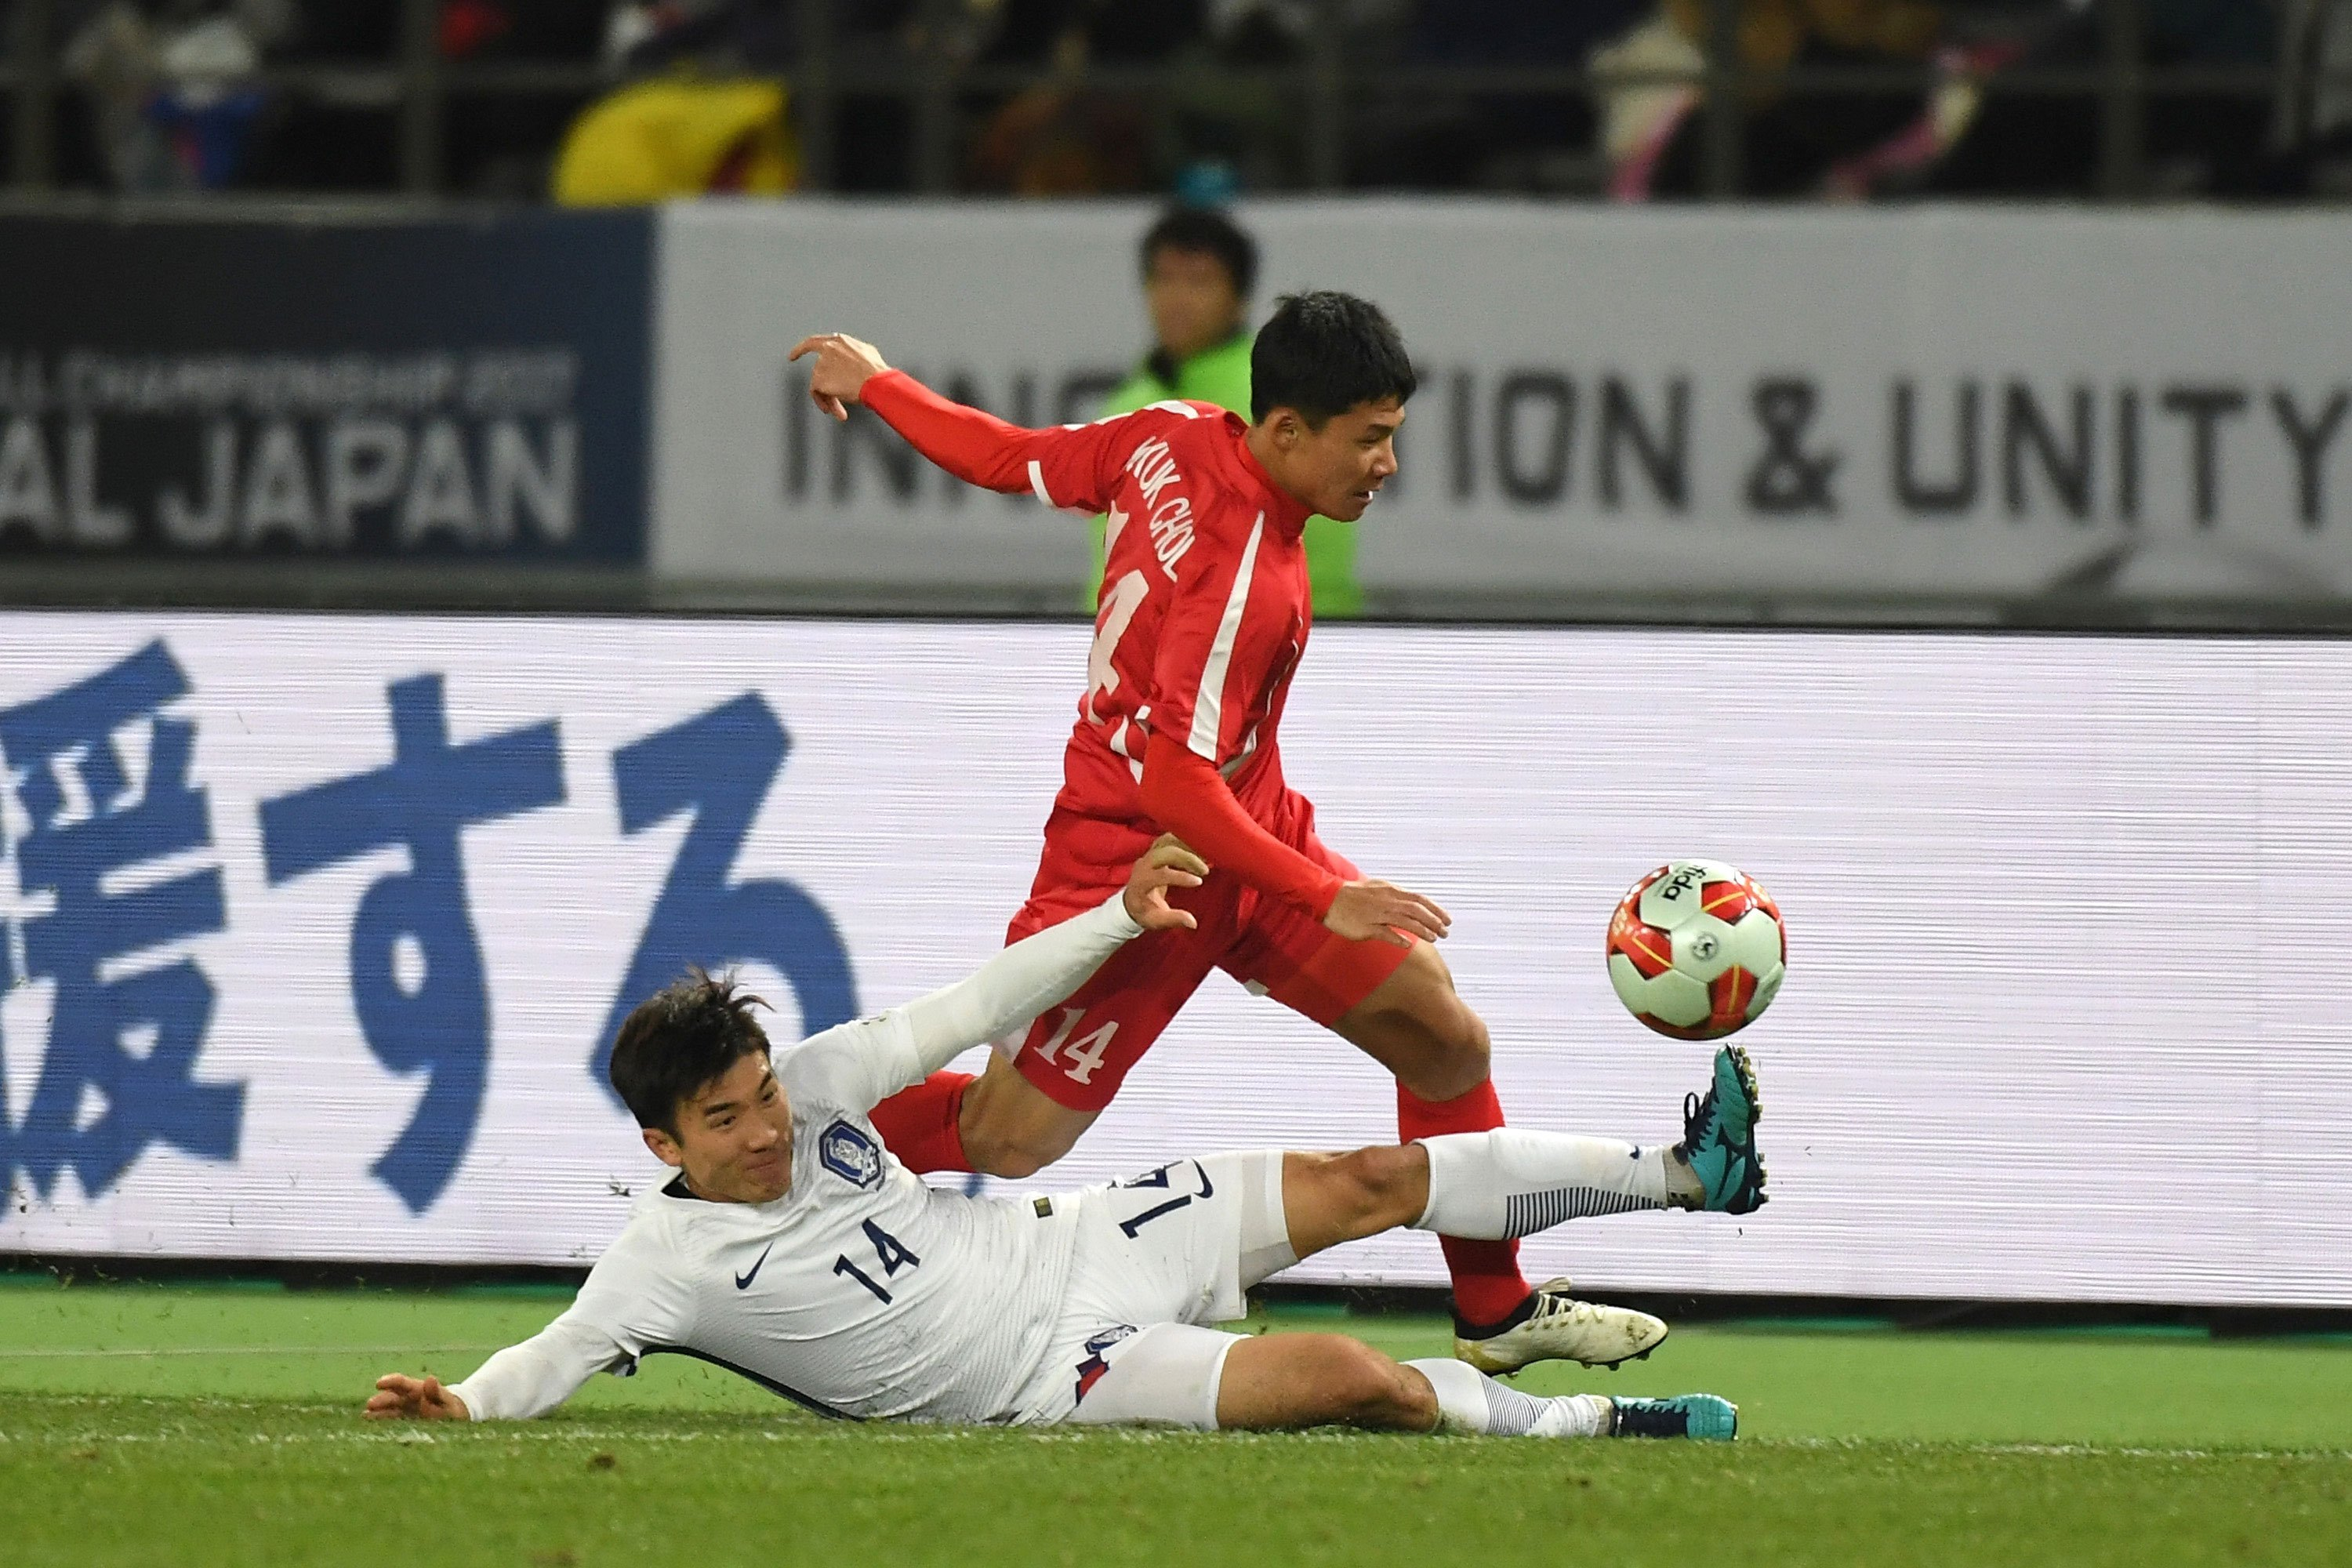 North and South Korea play first men's soccer match on North Korean soil in almost 30 years